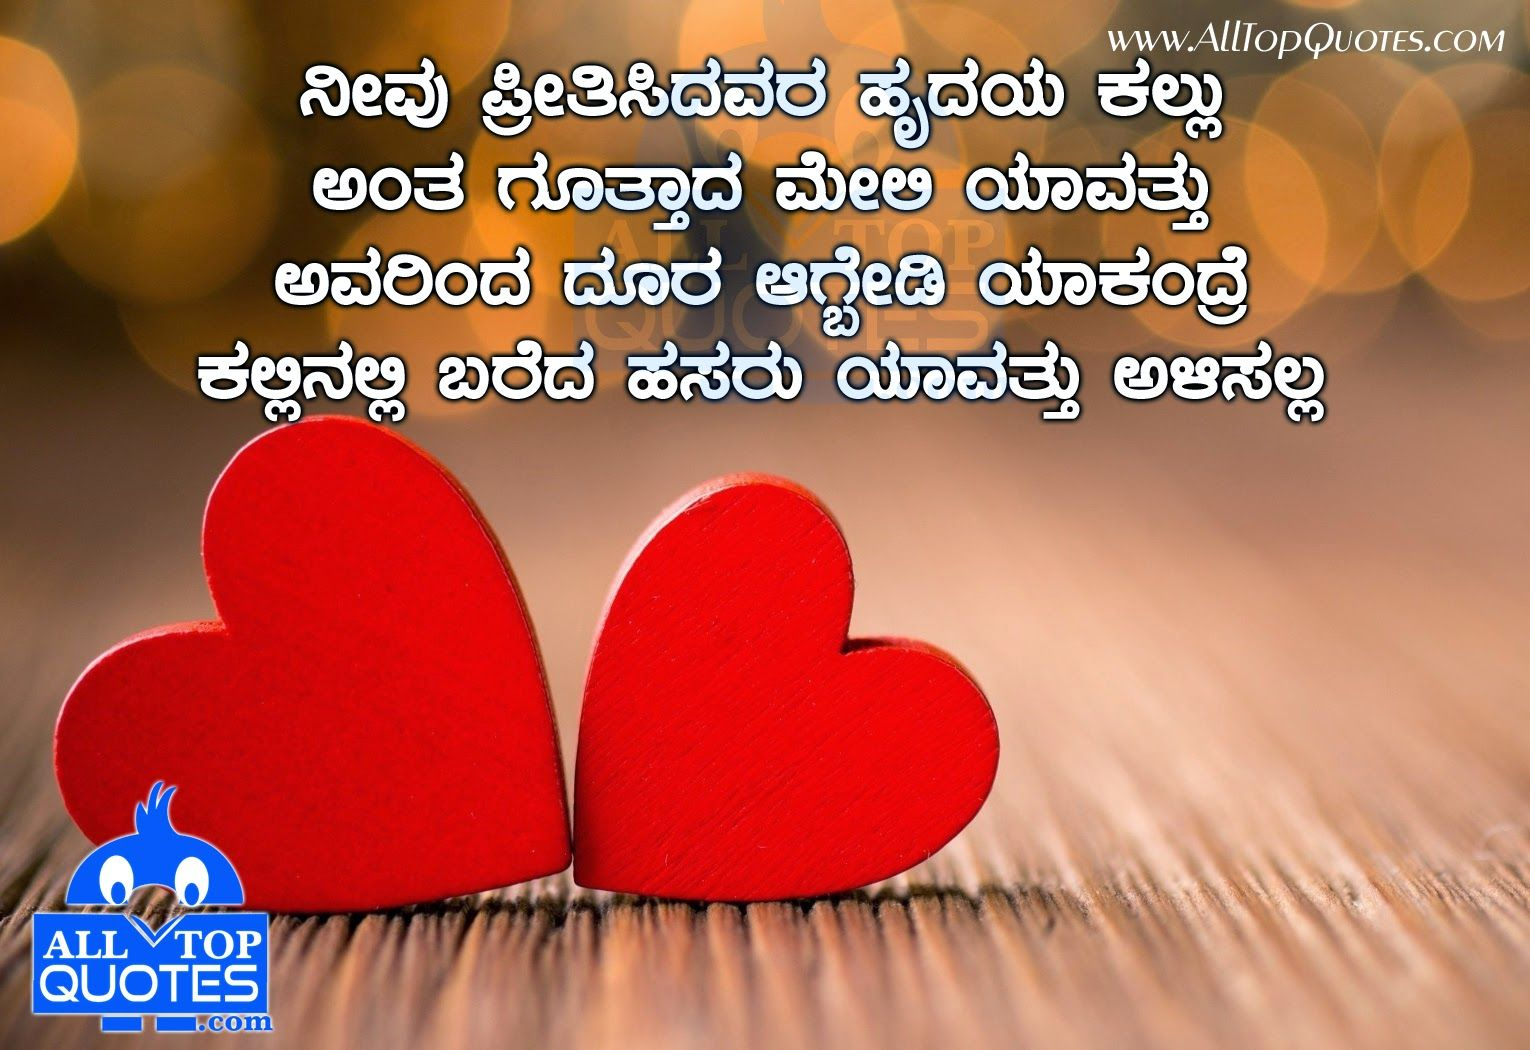 Best love quotes in kannada 5vfzb1tnq in love quotes pinterest best love quotes in kannada 5vfzb1tnq in love quotes pinterest thecheapjerseys Image collections